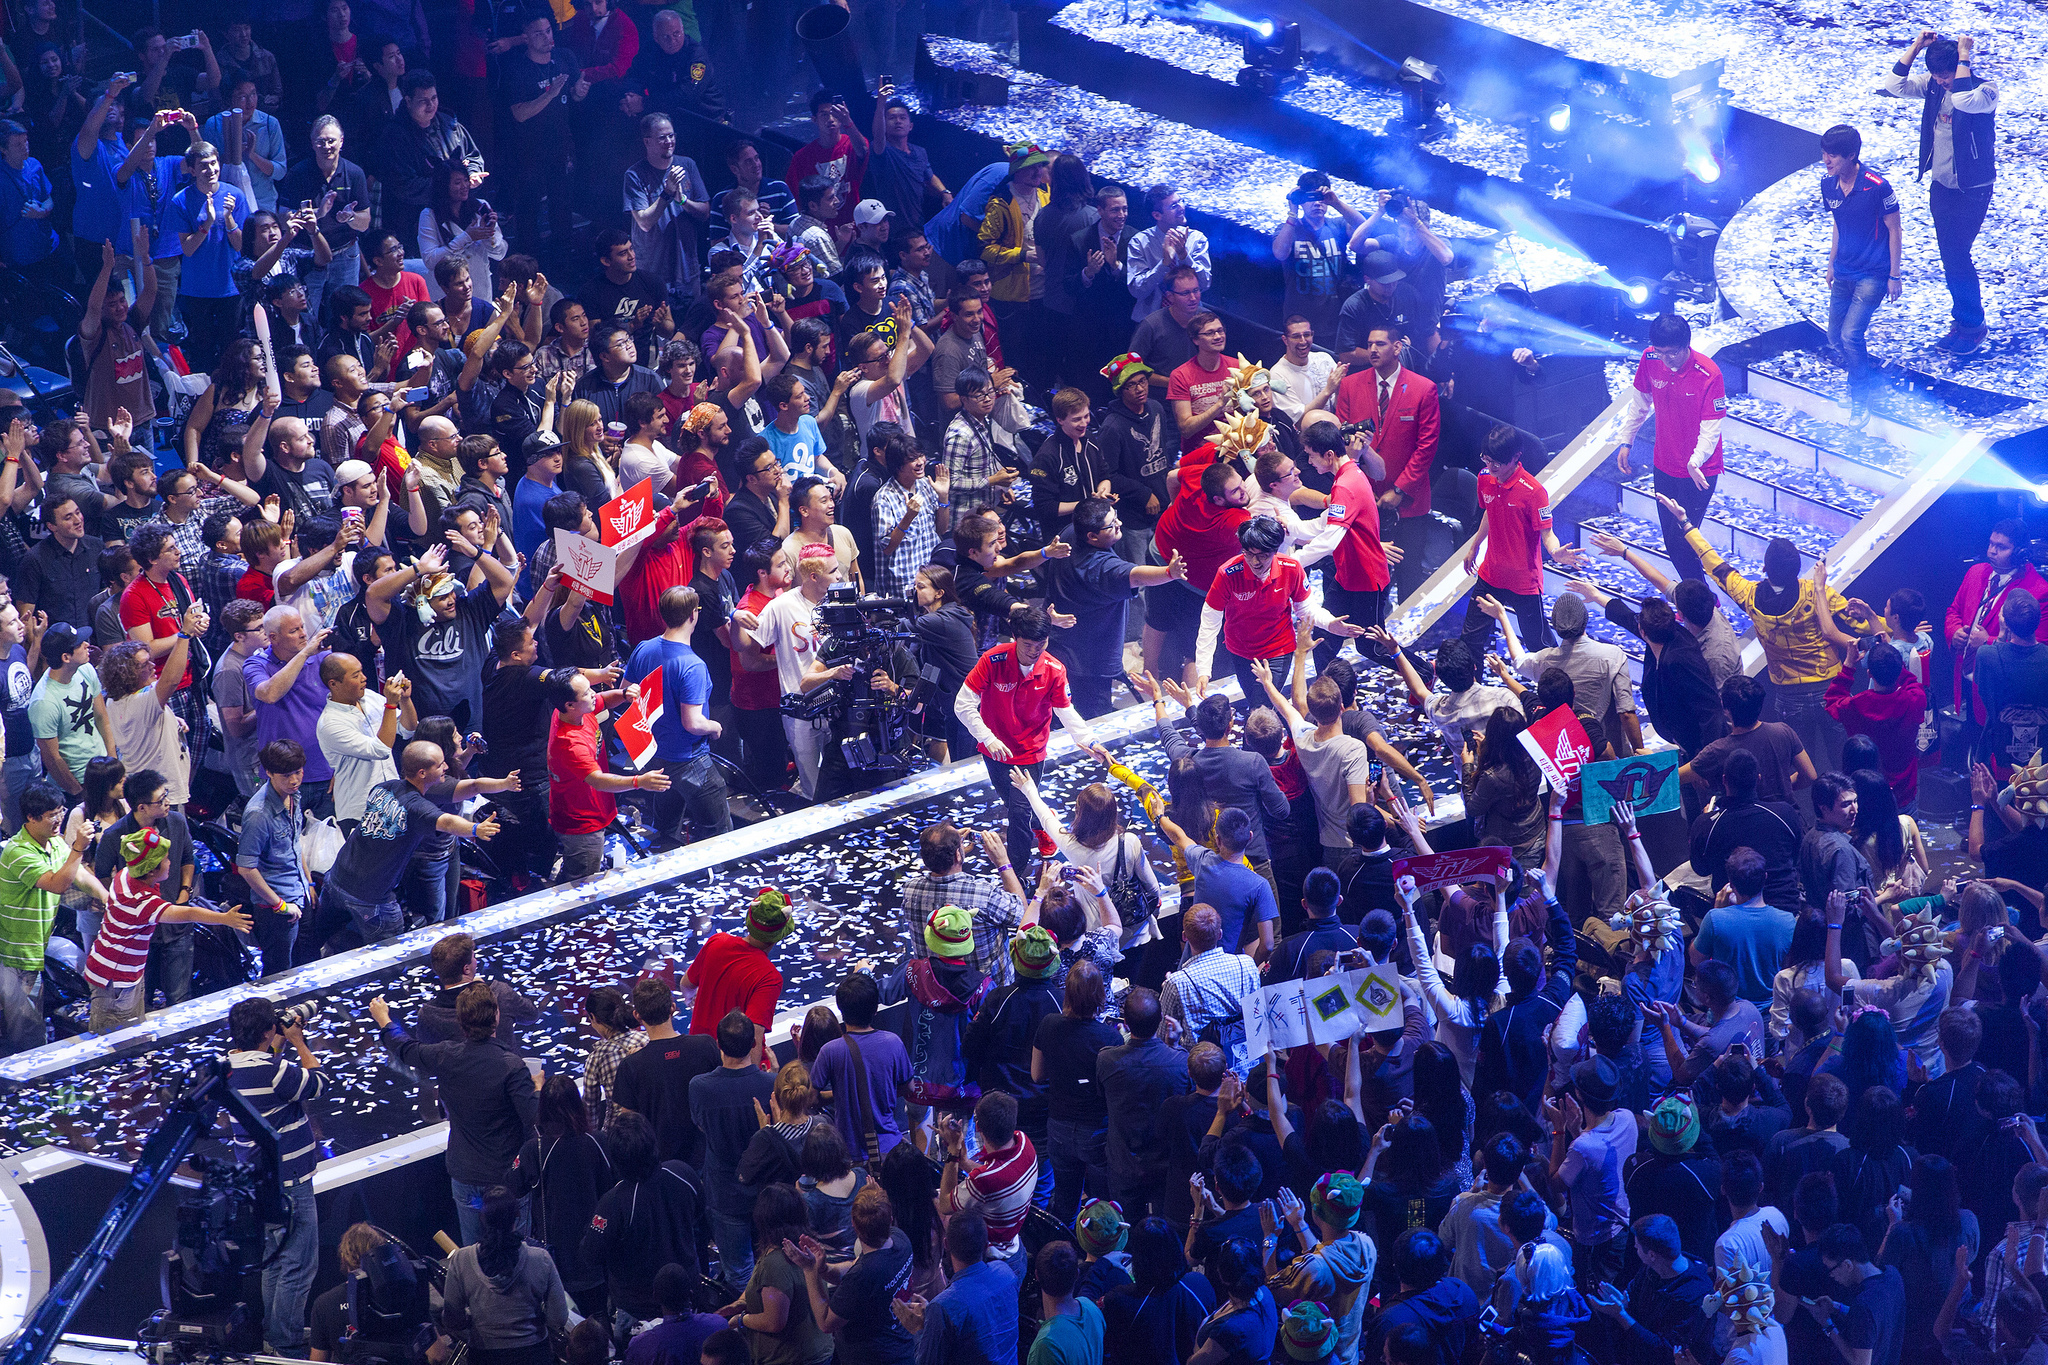 Members of SK Telecom T1 K high five members of the crowd after winning the World Championships 2013.  source